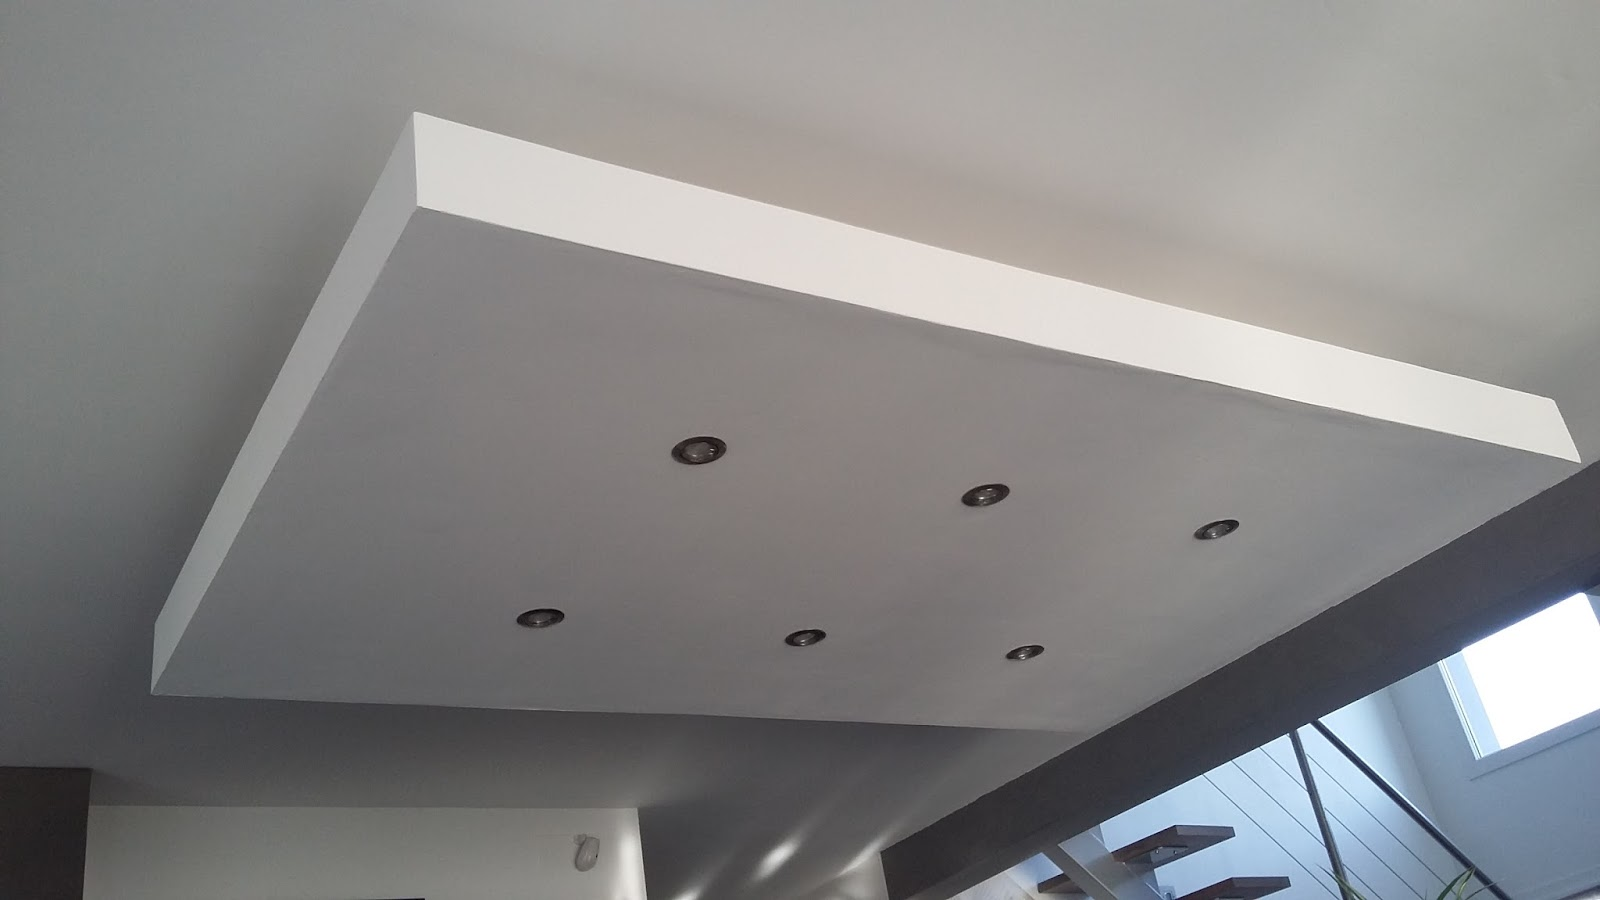 Bricolage de l 39 id e la r alisation plafond descendu for Modele de plafond decoratif